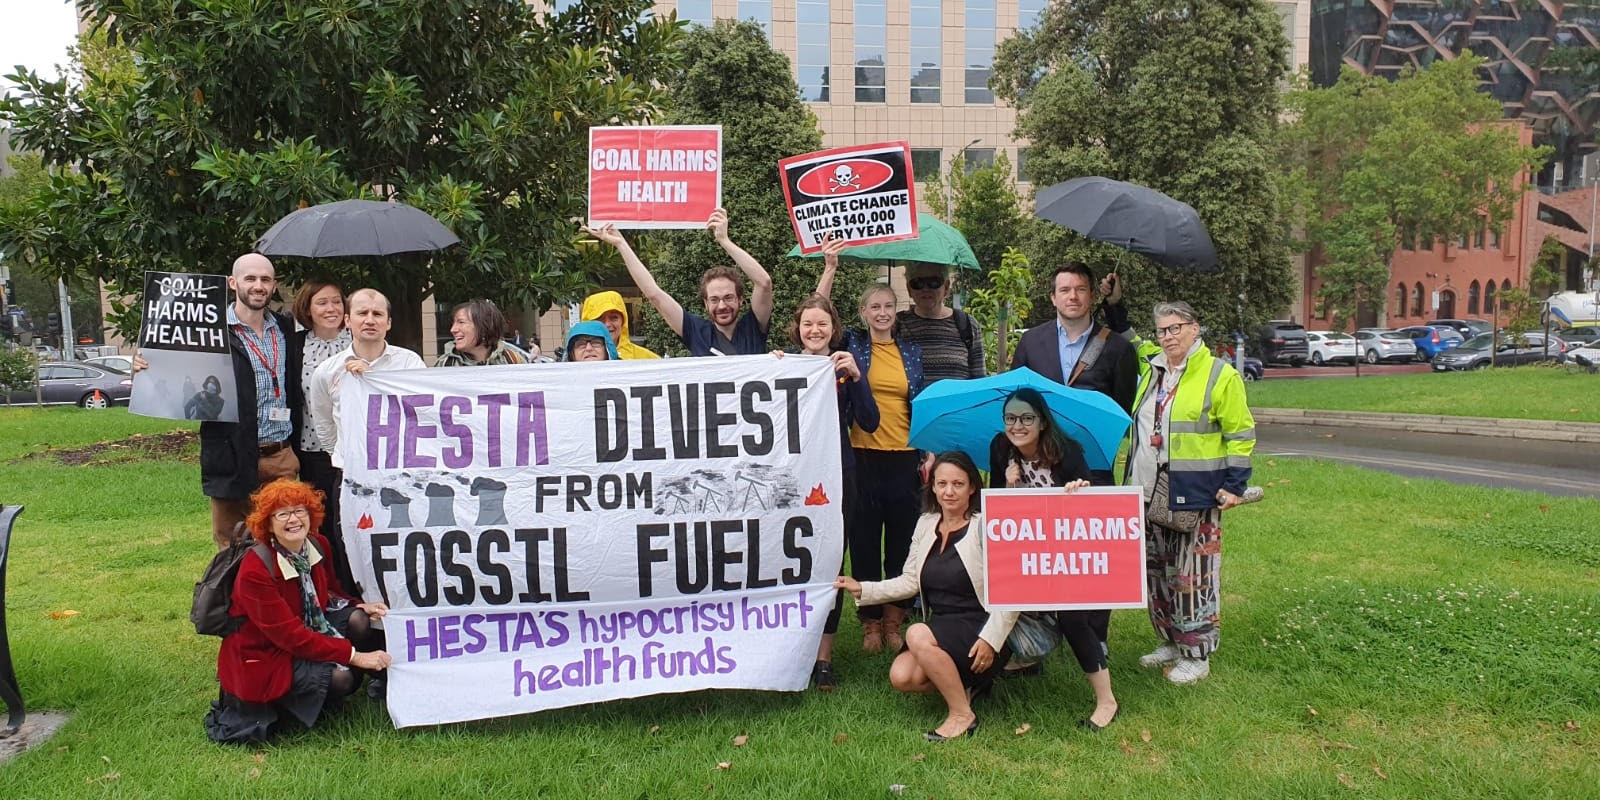 HESTA | If you're a HESTA member<br>ask them to advocate for a sustainable future